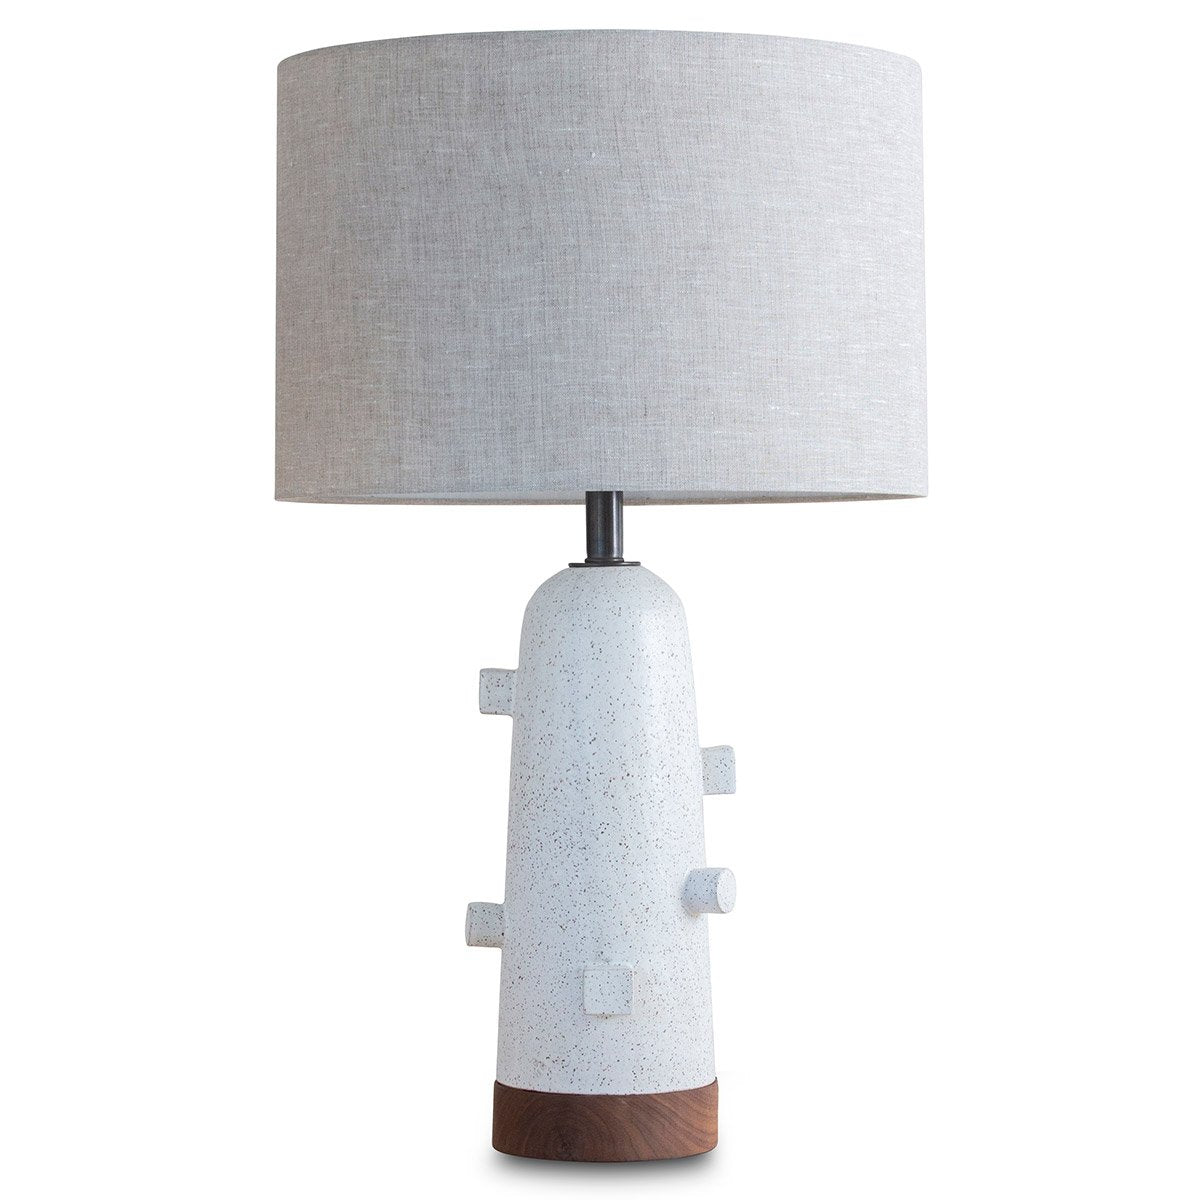 Artificial Intelligence Table Lamp Eleish Van Breems Home